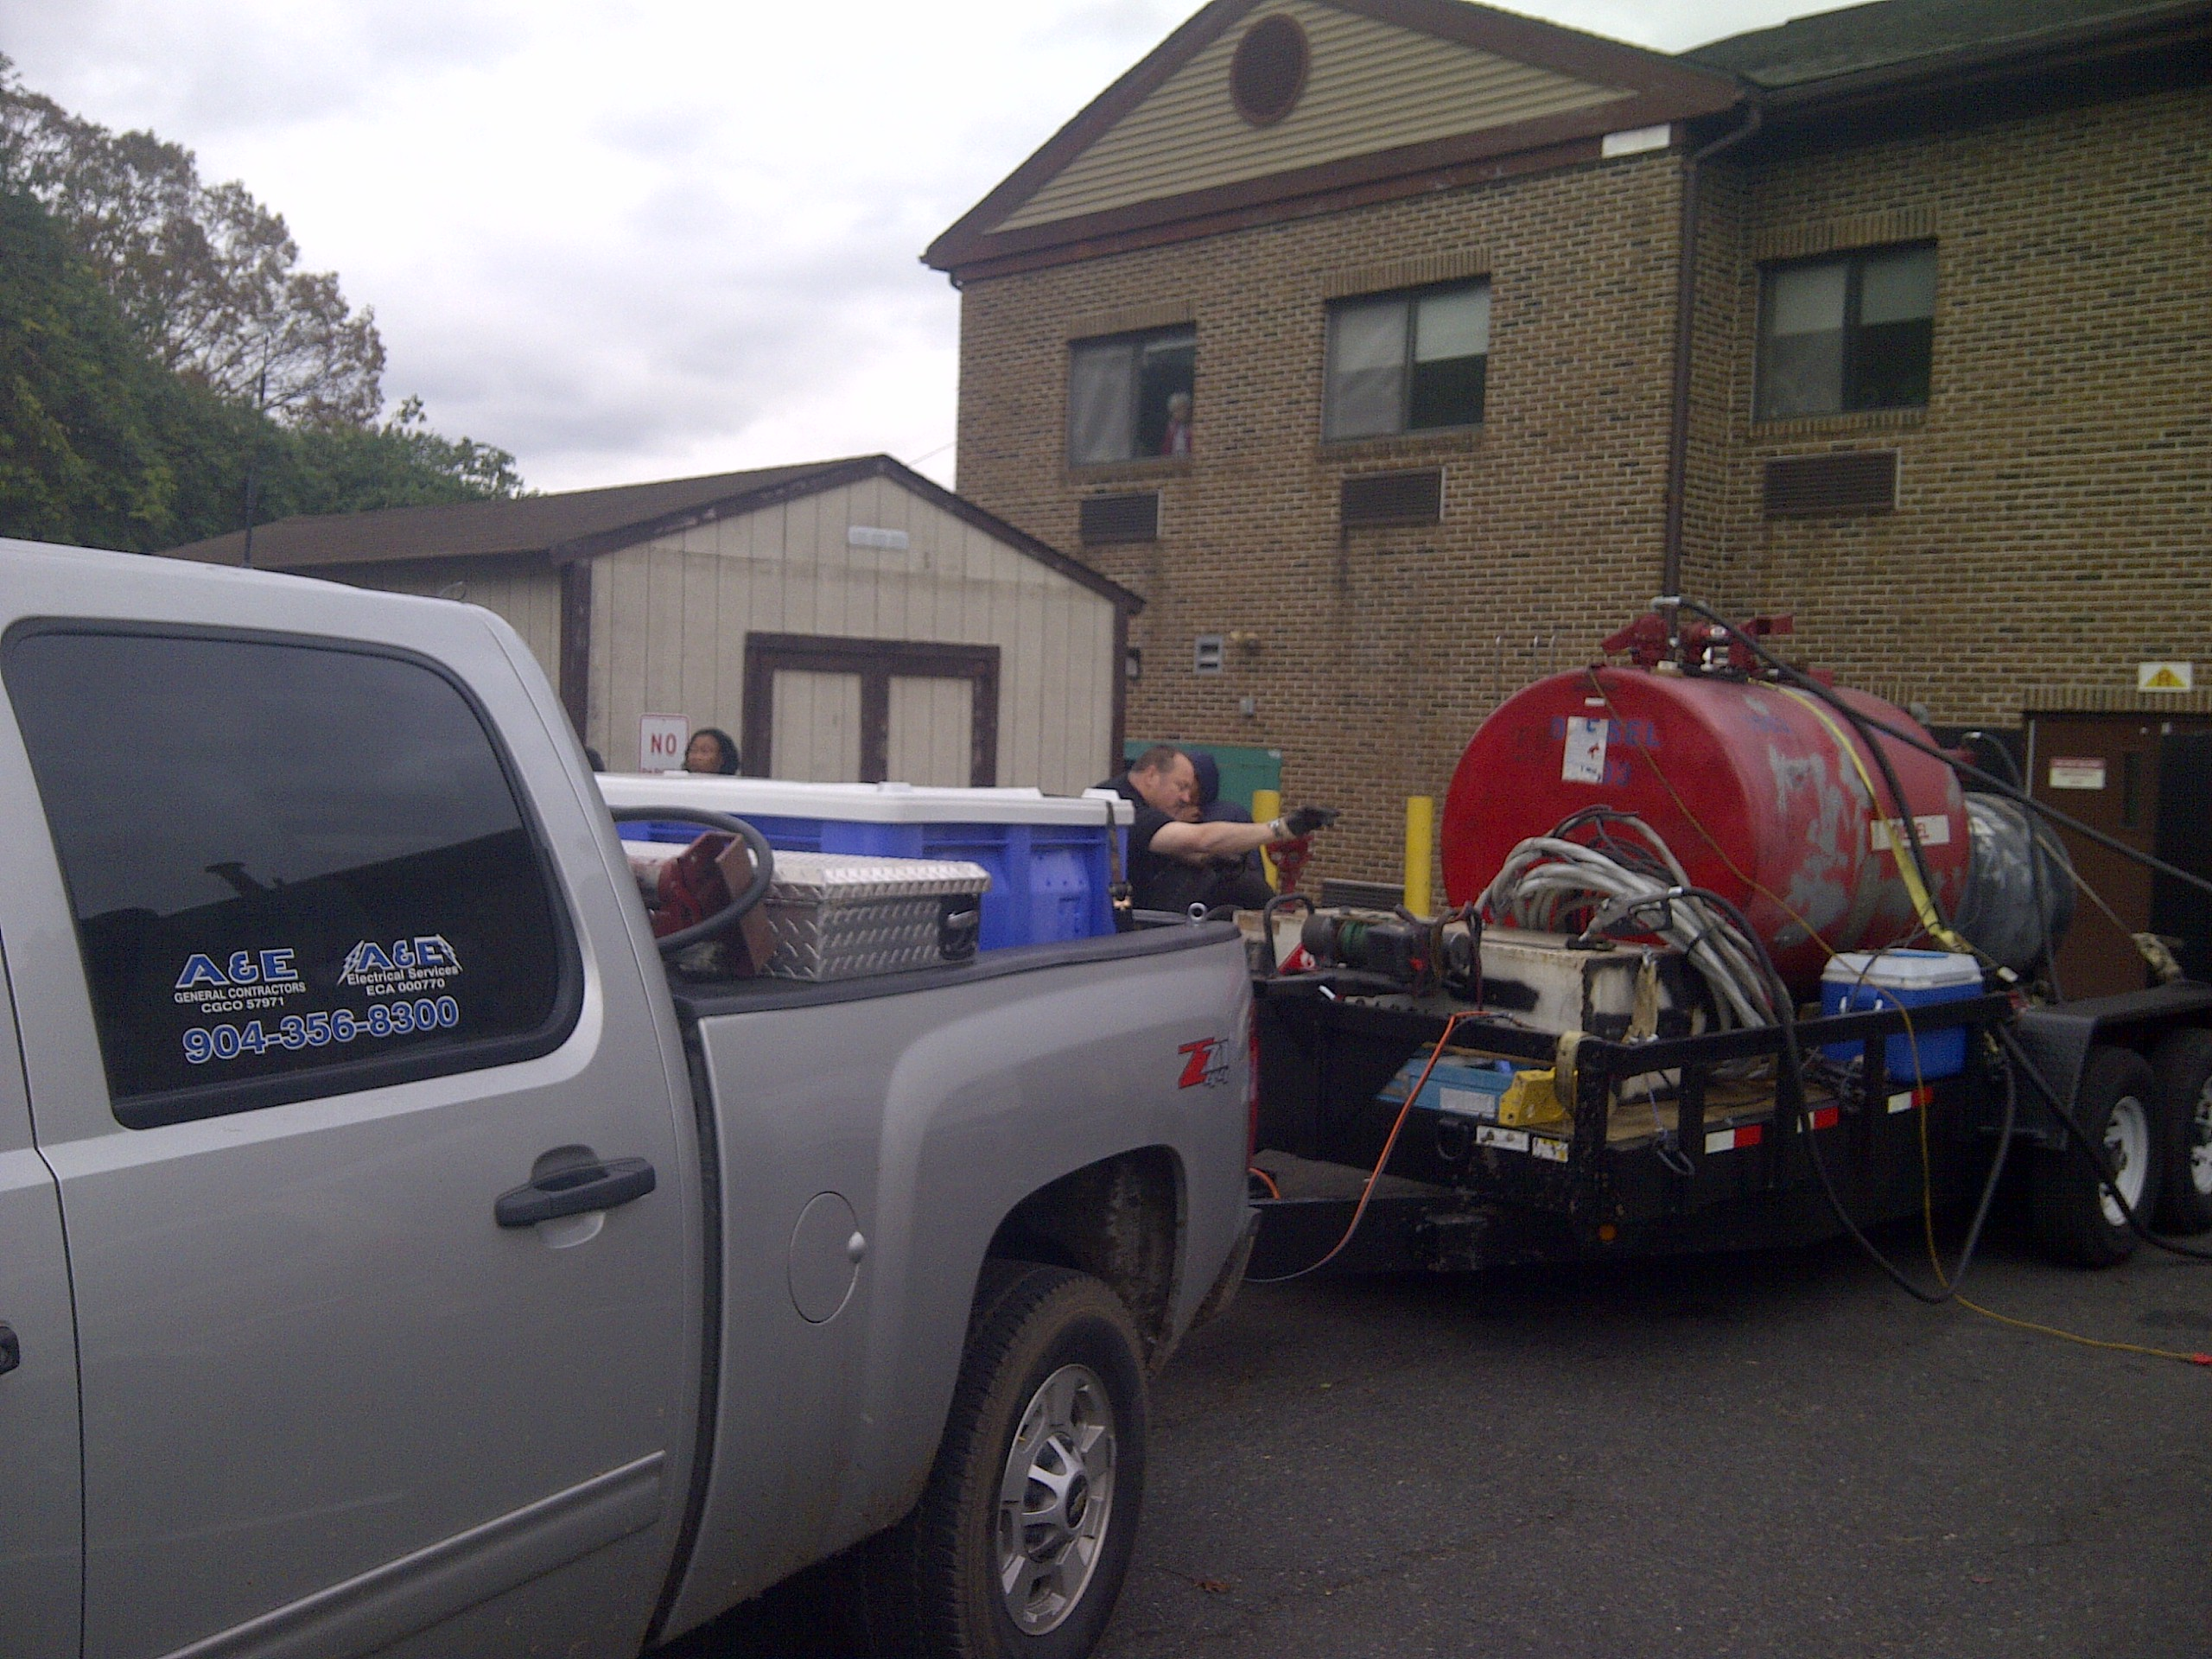 HCR Manor care getting fuel rasions during Hurricane Sandy